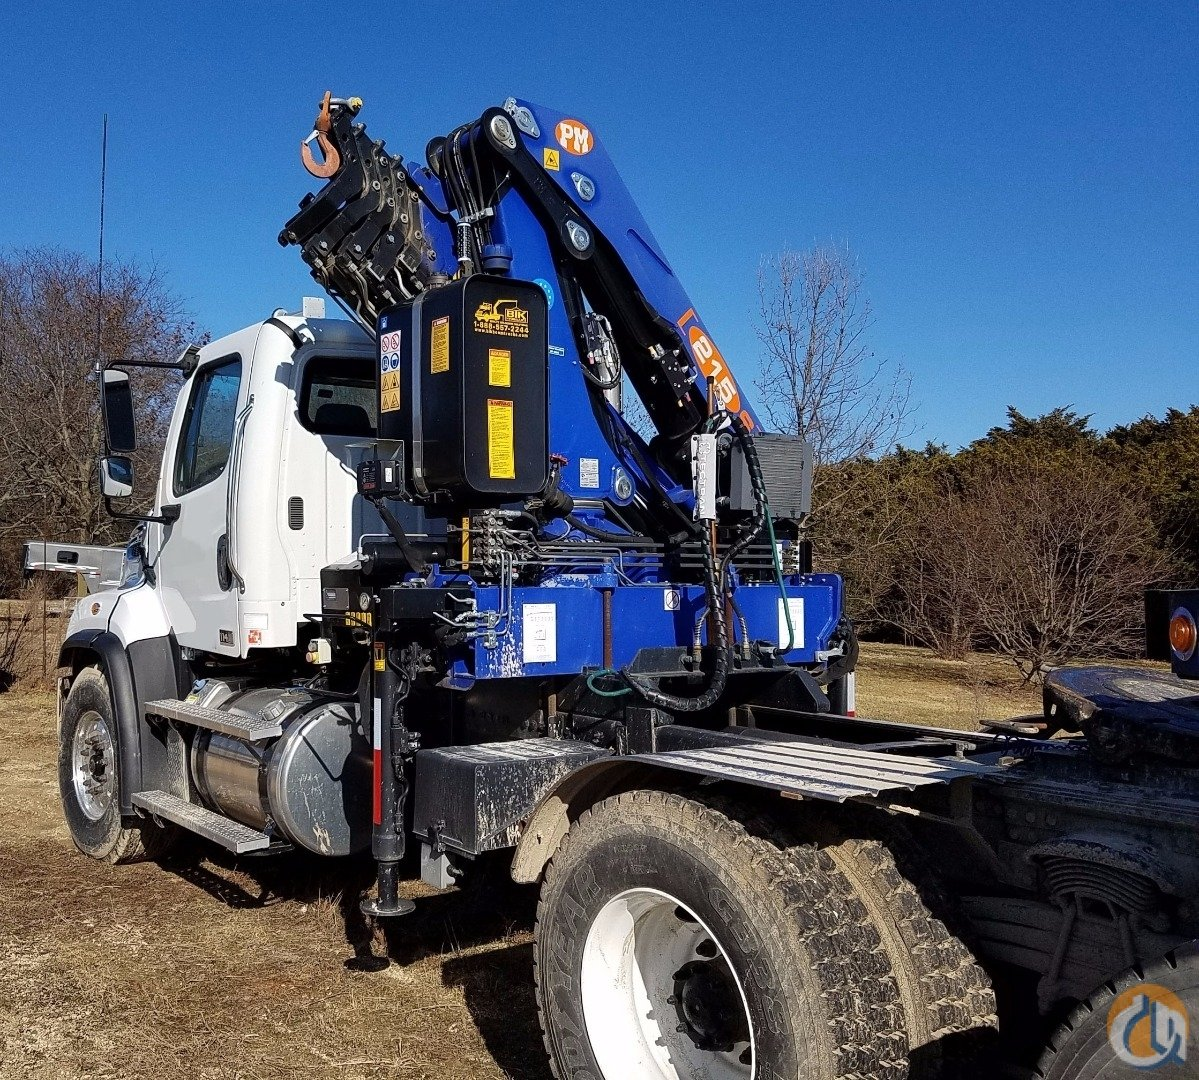 LIKE NEW 201213 Tractor-Mounted PM 21525 S Knuckle-Boom Crane for Sale on CraneNetwork.com